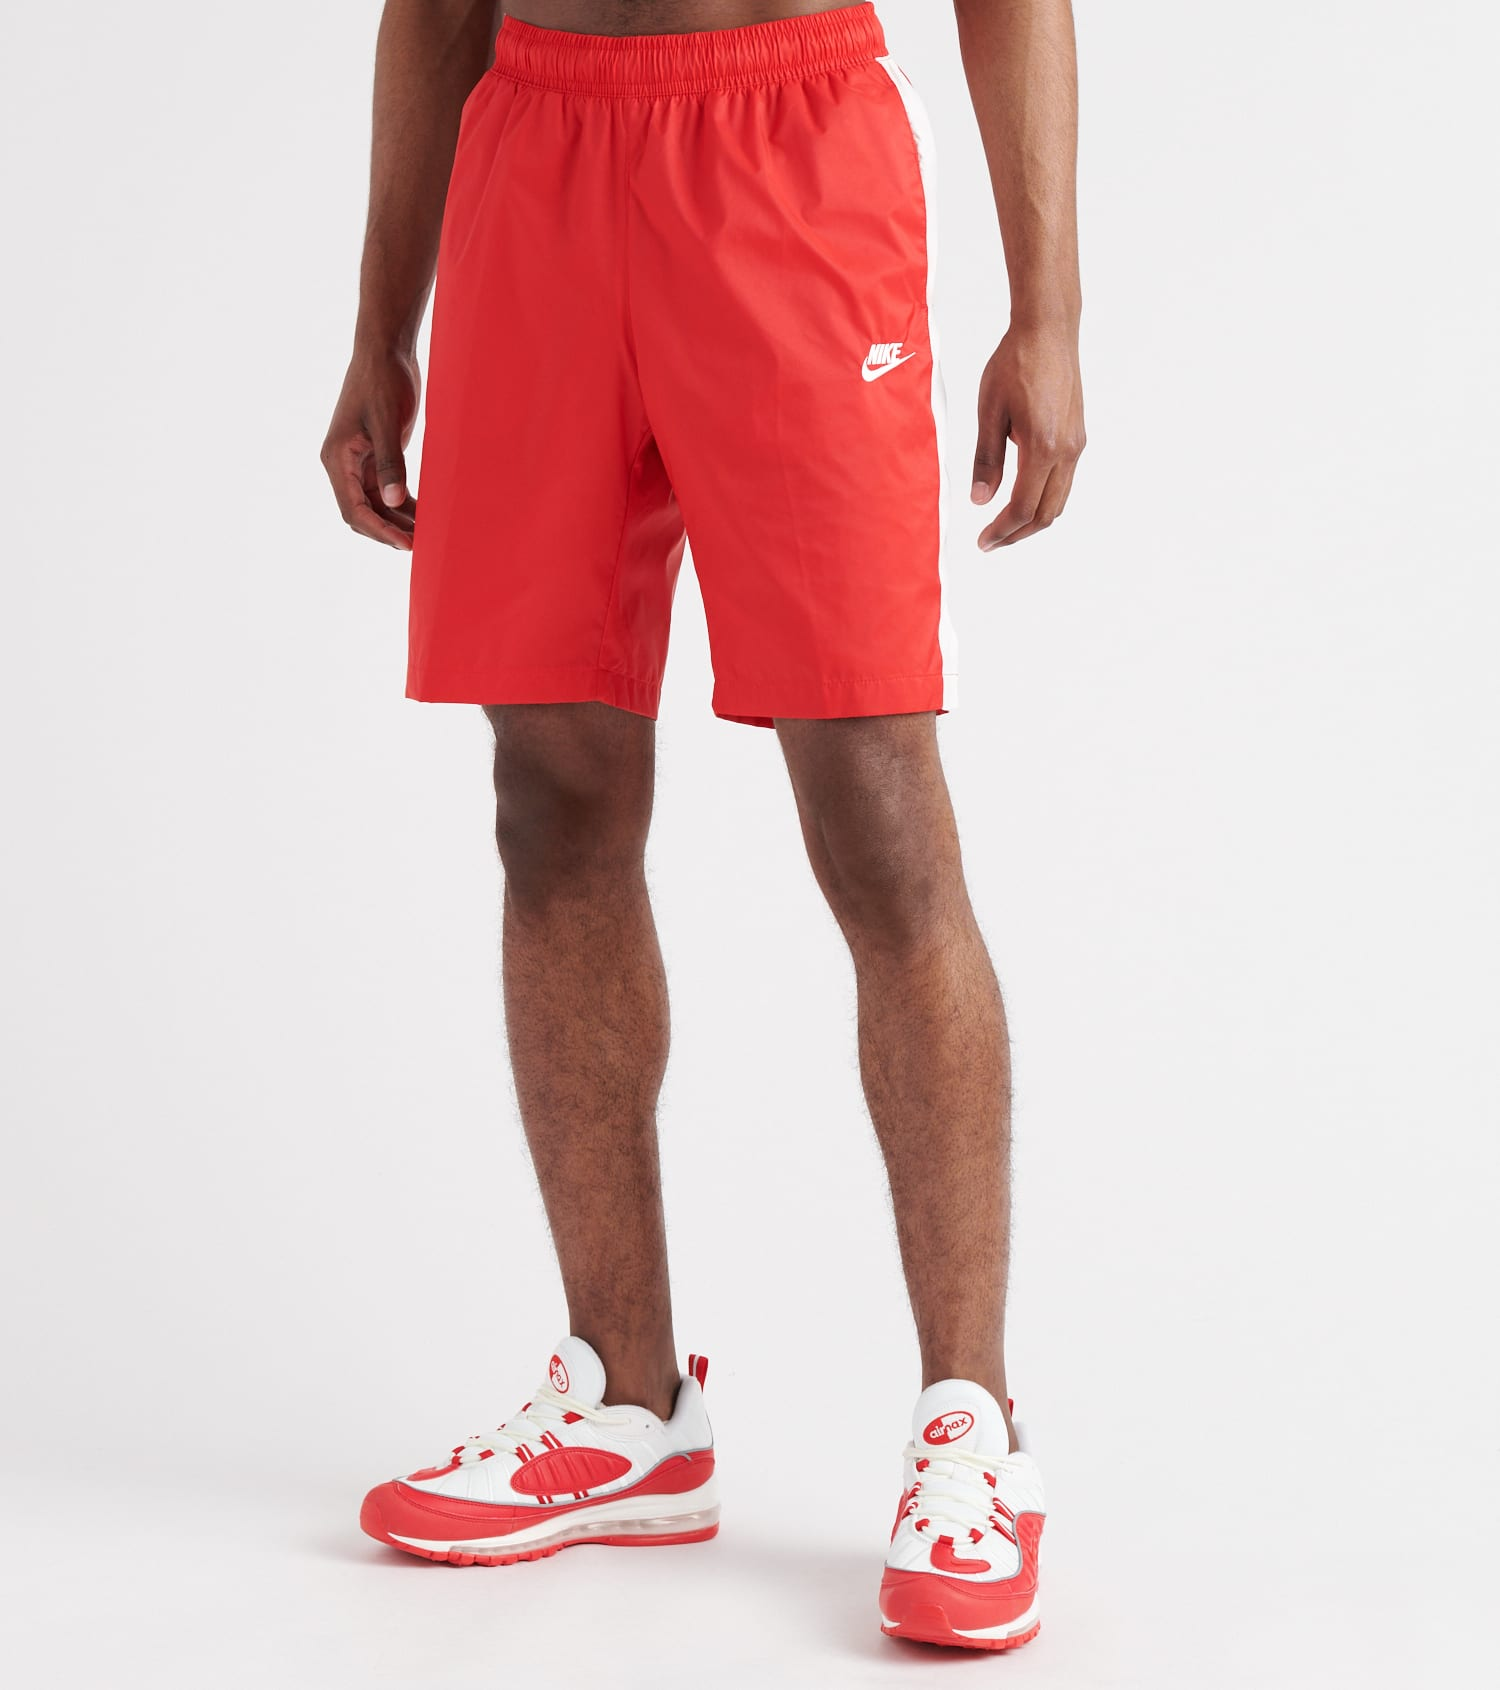 shopping discount up to 60% sophisticated technologies Sportswear CE Core Woven Short